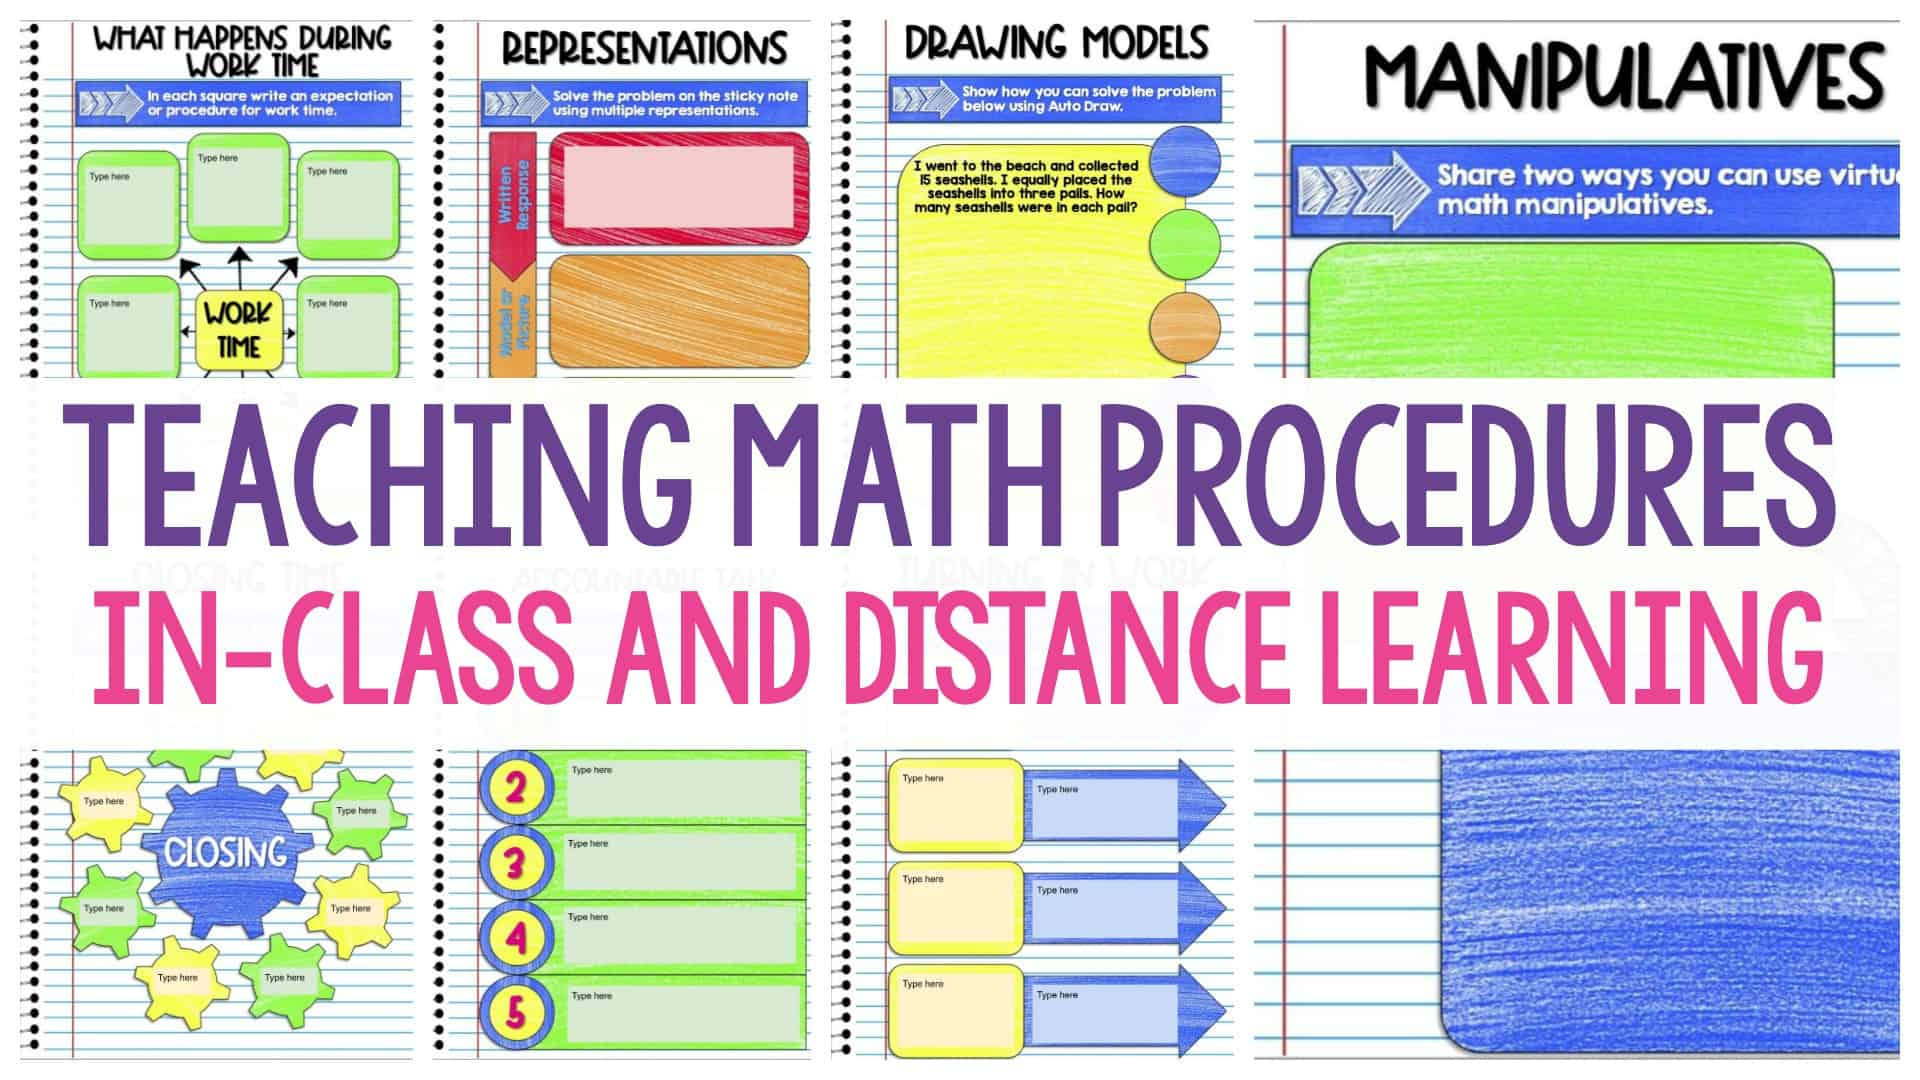 How To Teach Math Procedures With Social Distancing And